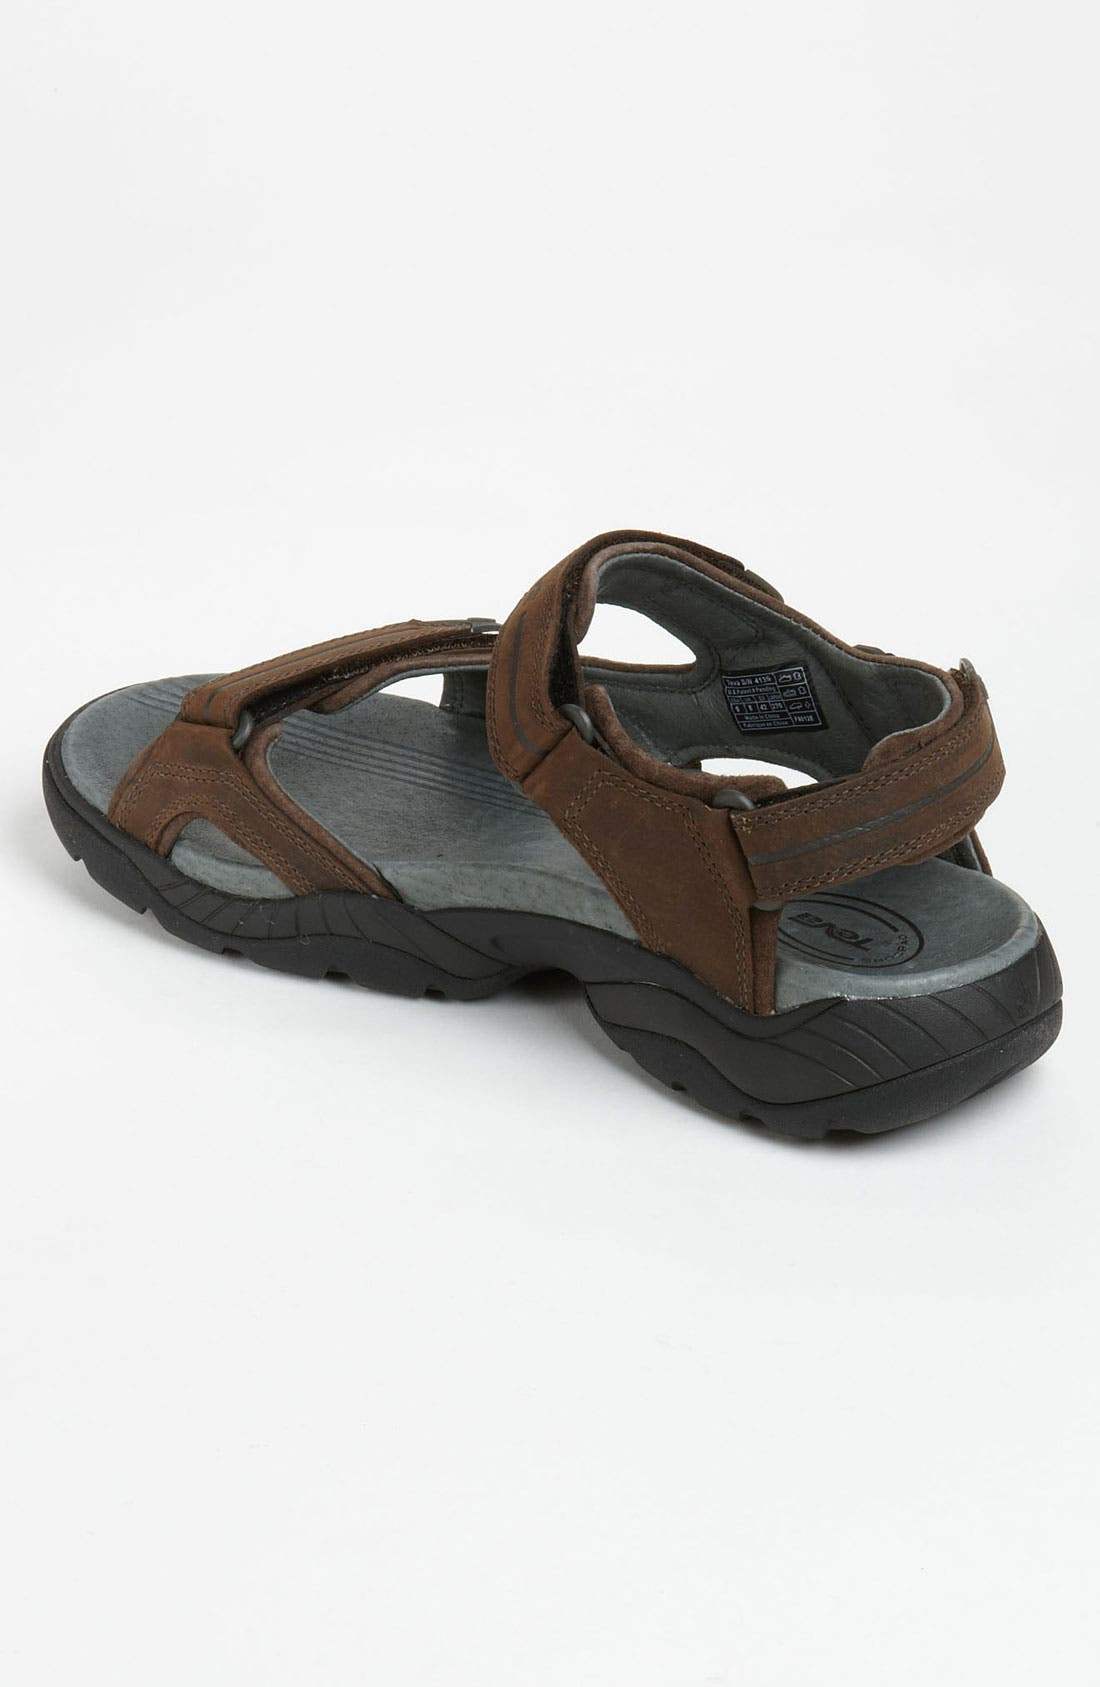 Alternate Image 2  - Teva 'Obern' Sandal